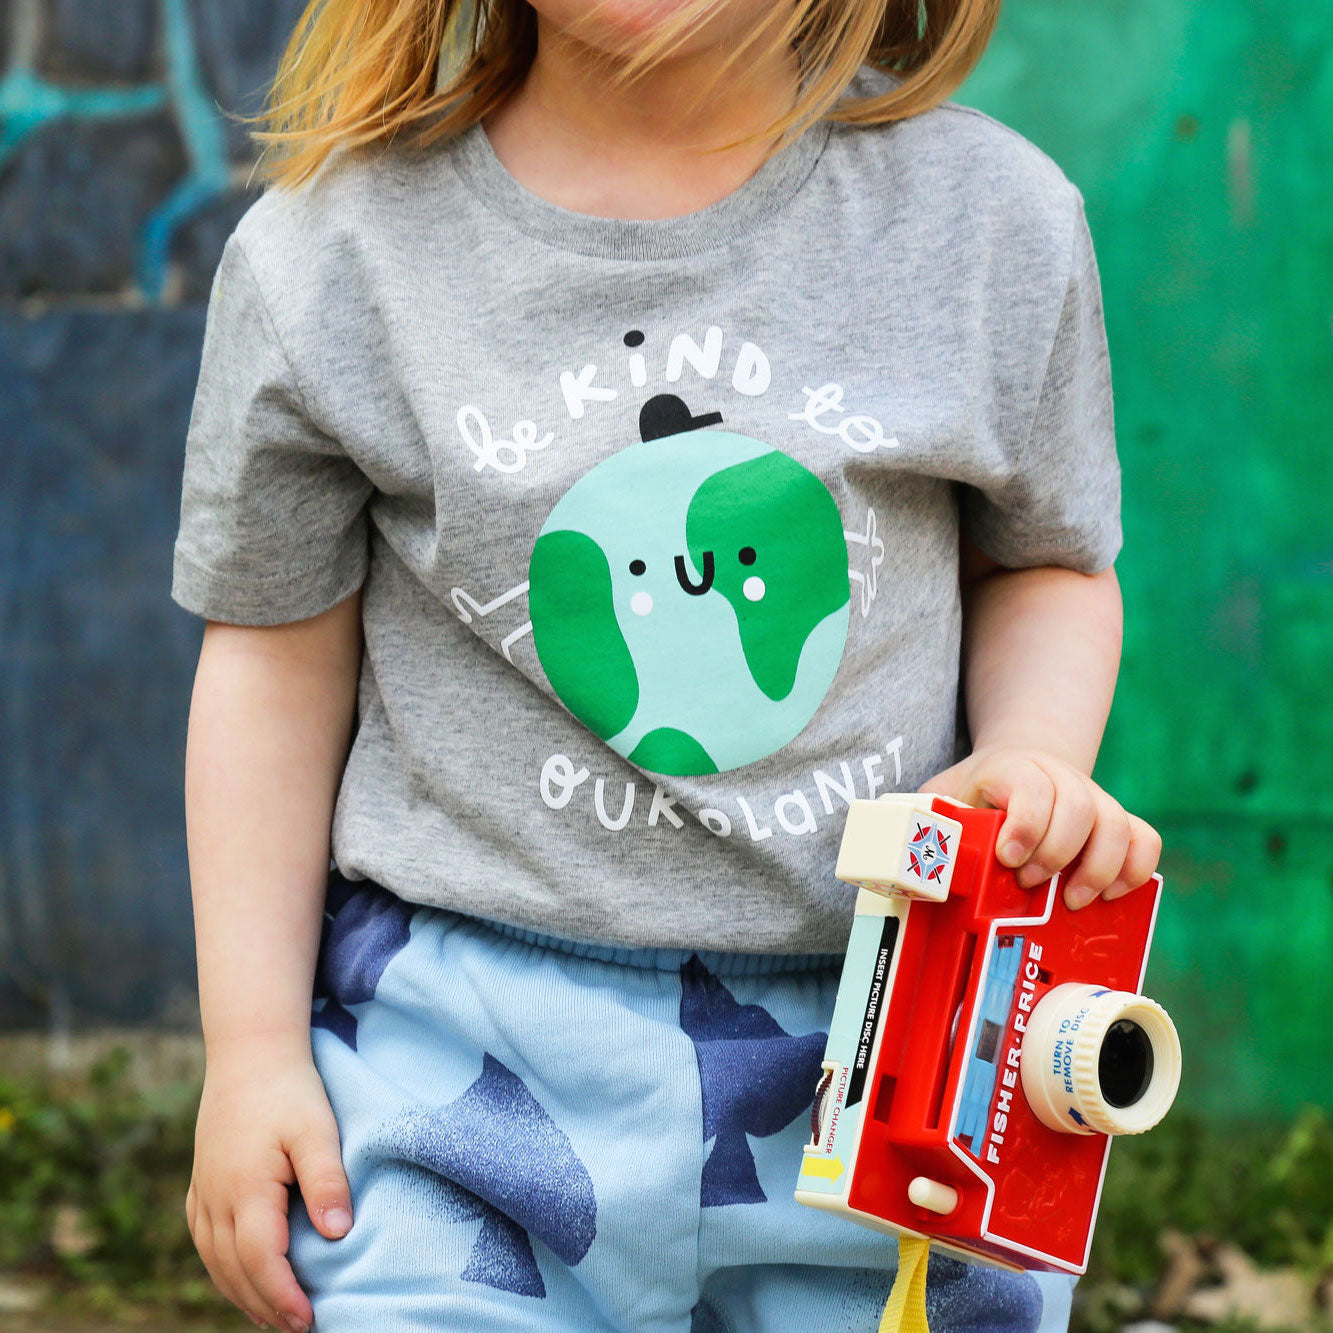 Earth Short Sleeve T-shirt - The Wee Store Brighton Children's Clothing & Gifts